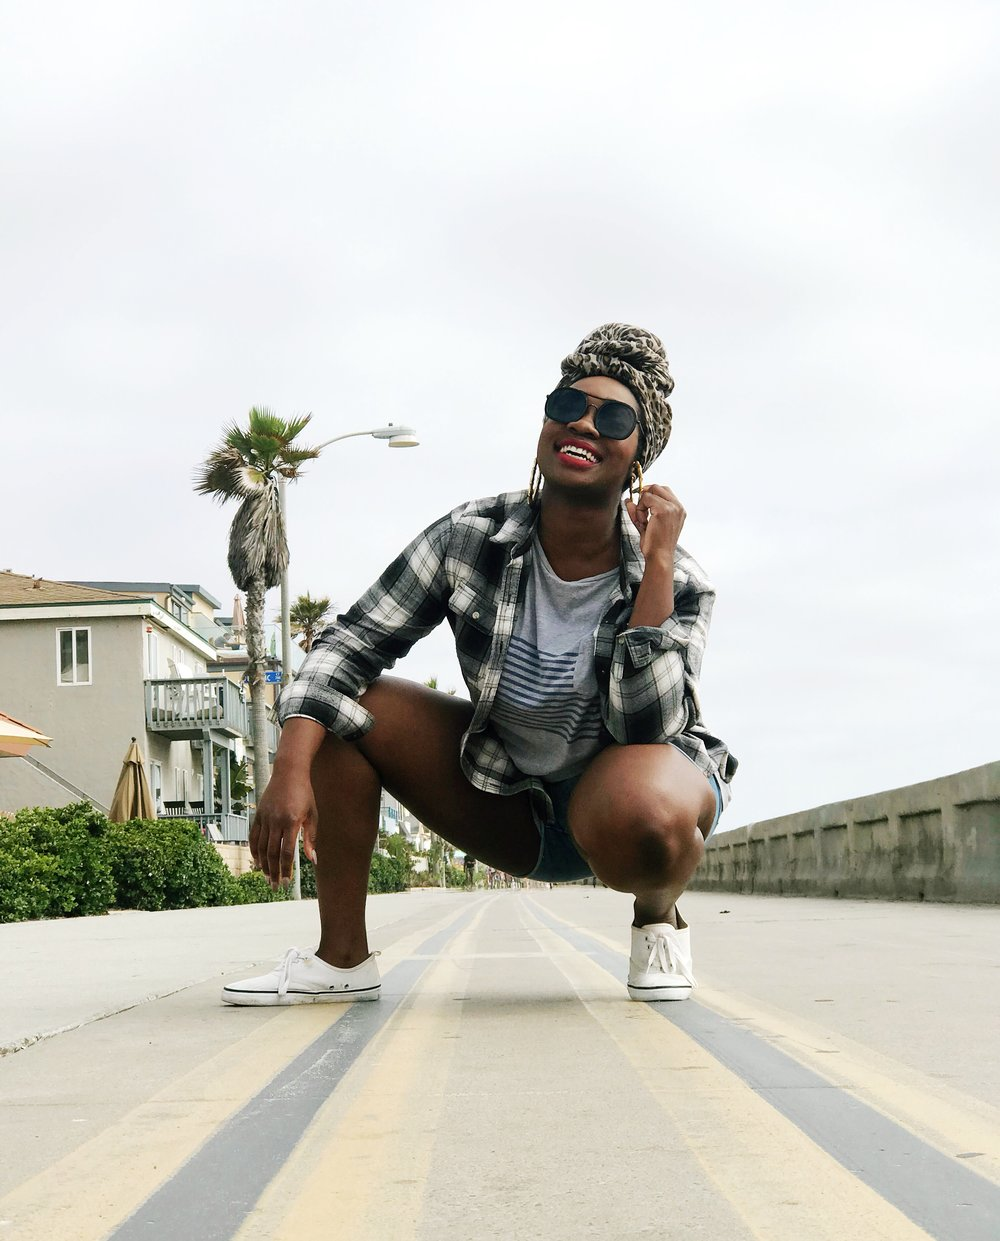 Image: Femi wearing summer clothes in Mission Beach San Diego